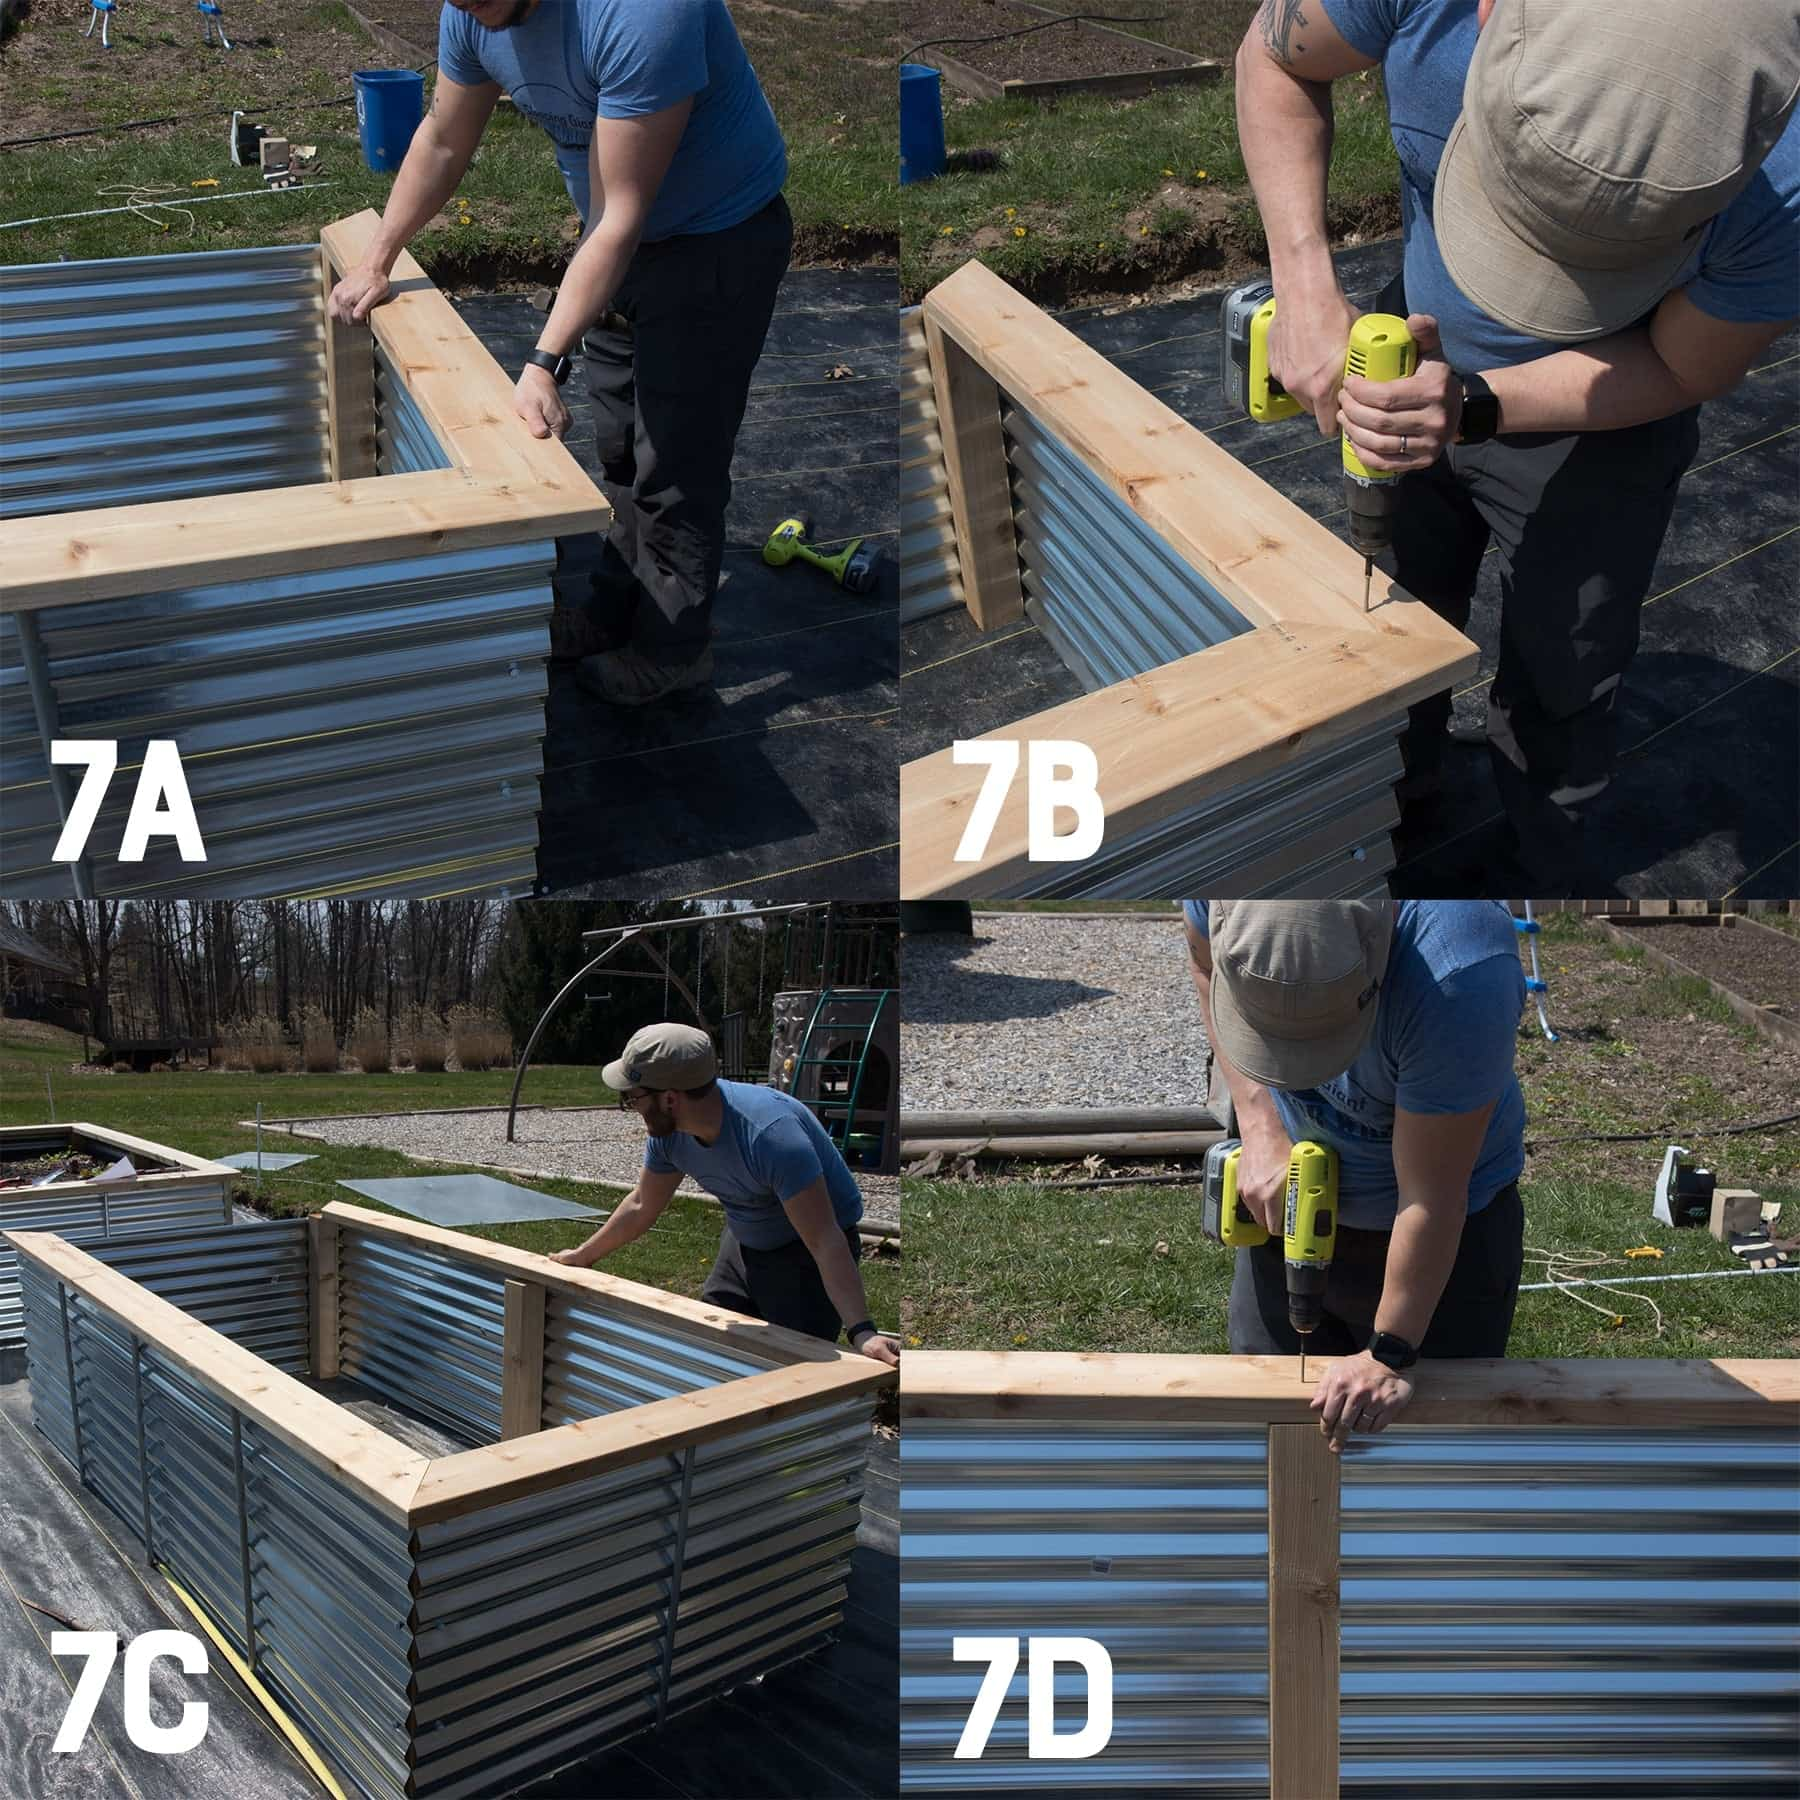 Four image collage of attaching a cedar top to a galvanized steel raised bed